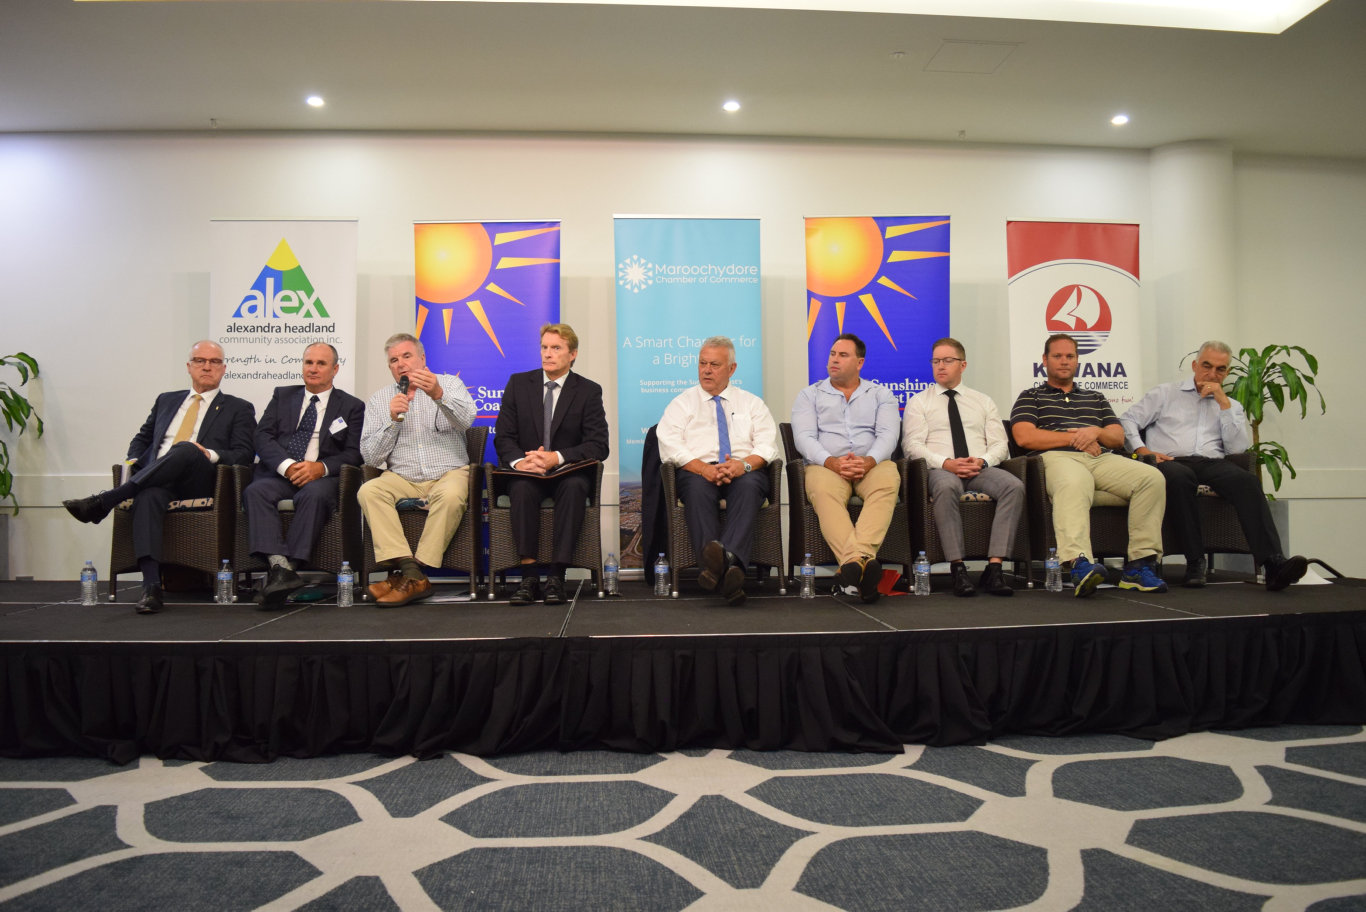 Mayoral and Division 4 candidates at a Sunshine Coast Daily election forum in Maroochydore.